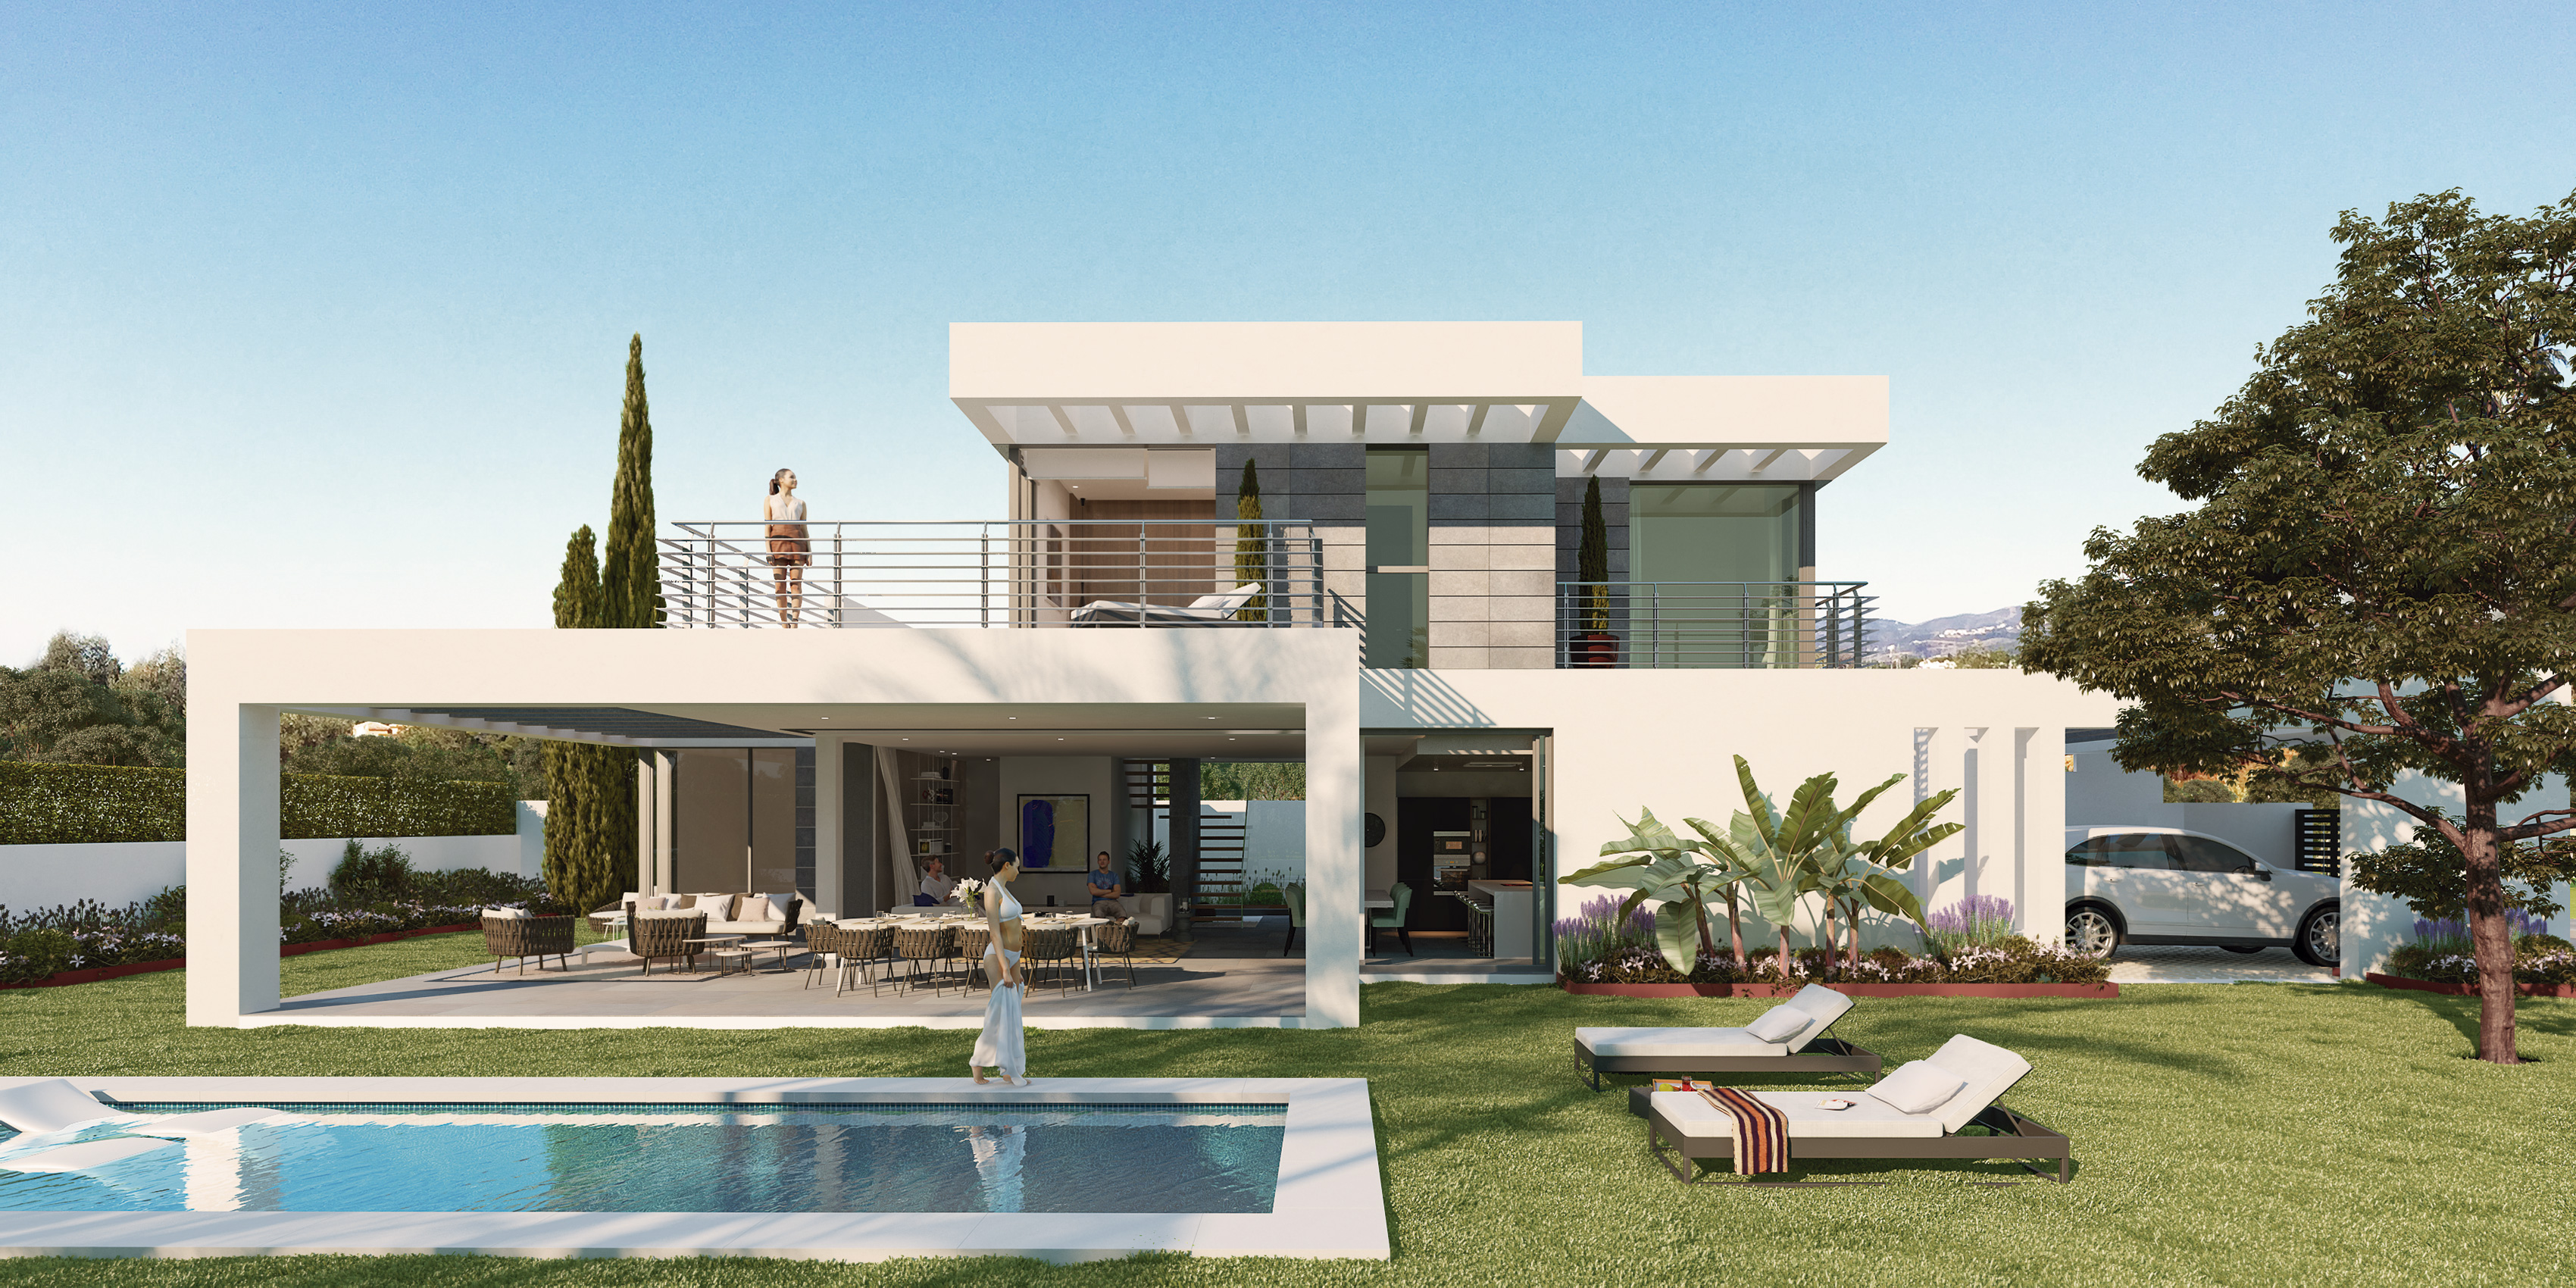 Luxury contemporary villas with excellent views over the surrounding countryside and nearby sea